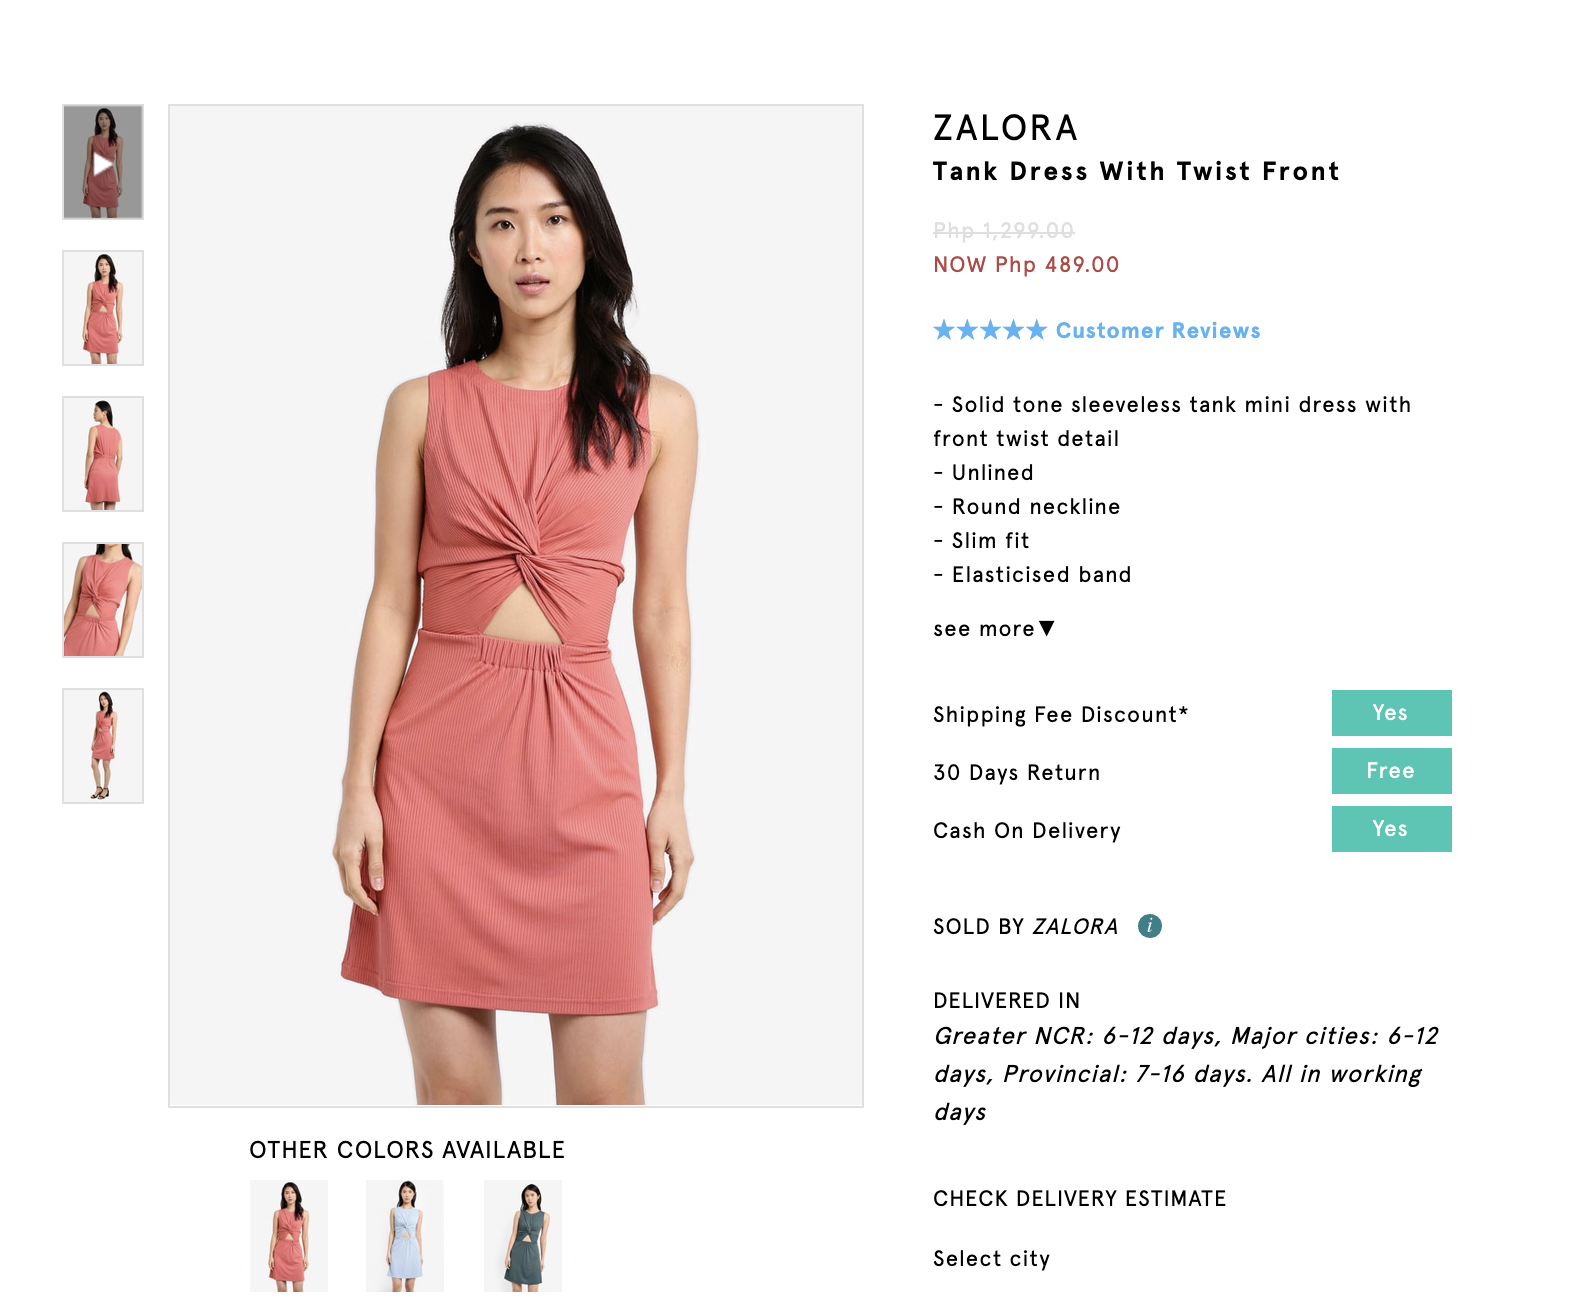 Screenshot of Zalora Basics Tank Dress with Twist Front